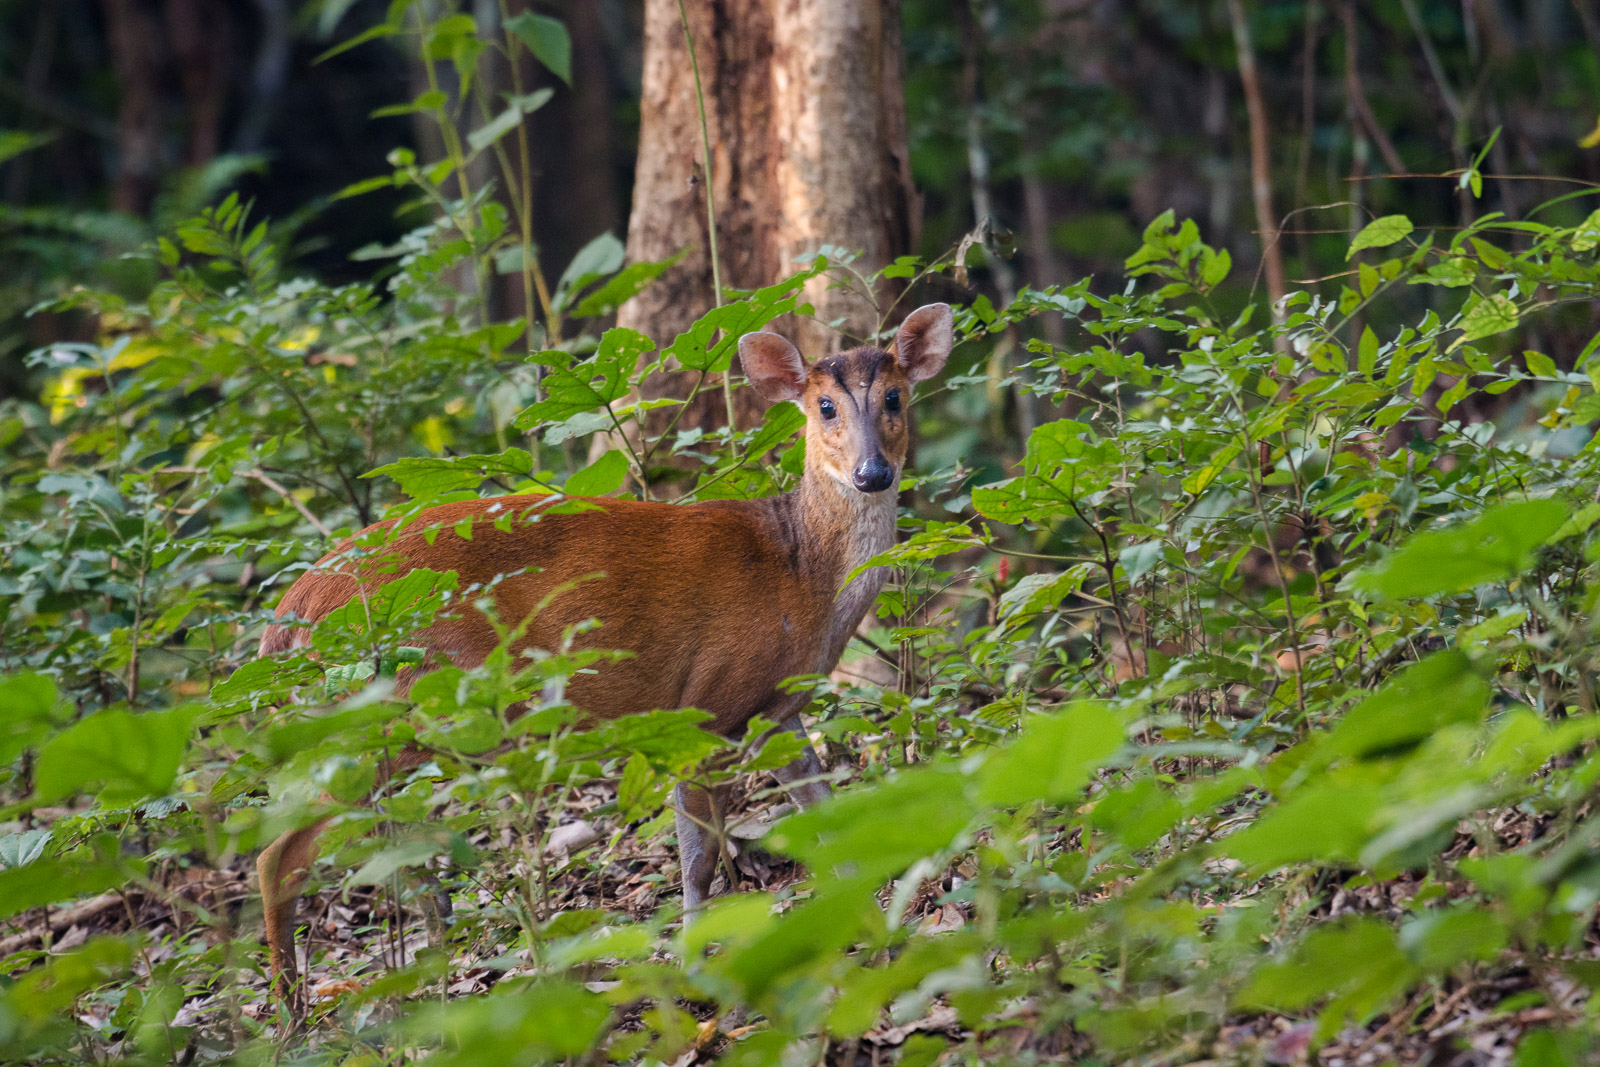 Image: Barking deer photographed at 1/30th shutter speed from the safari vehicle. Exif: at 360mm, f/...